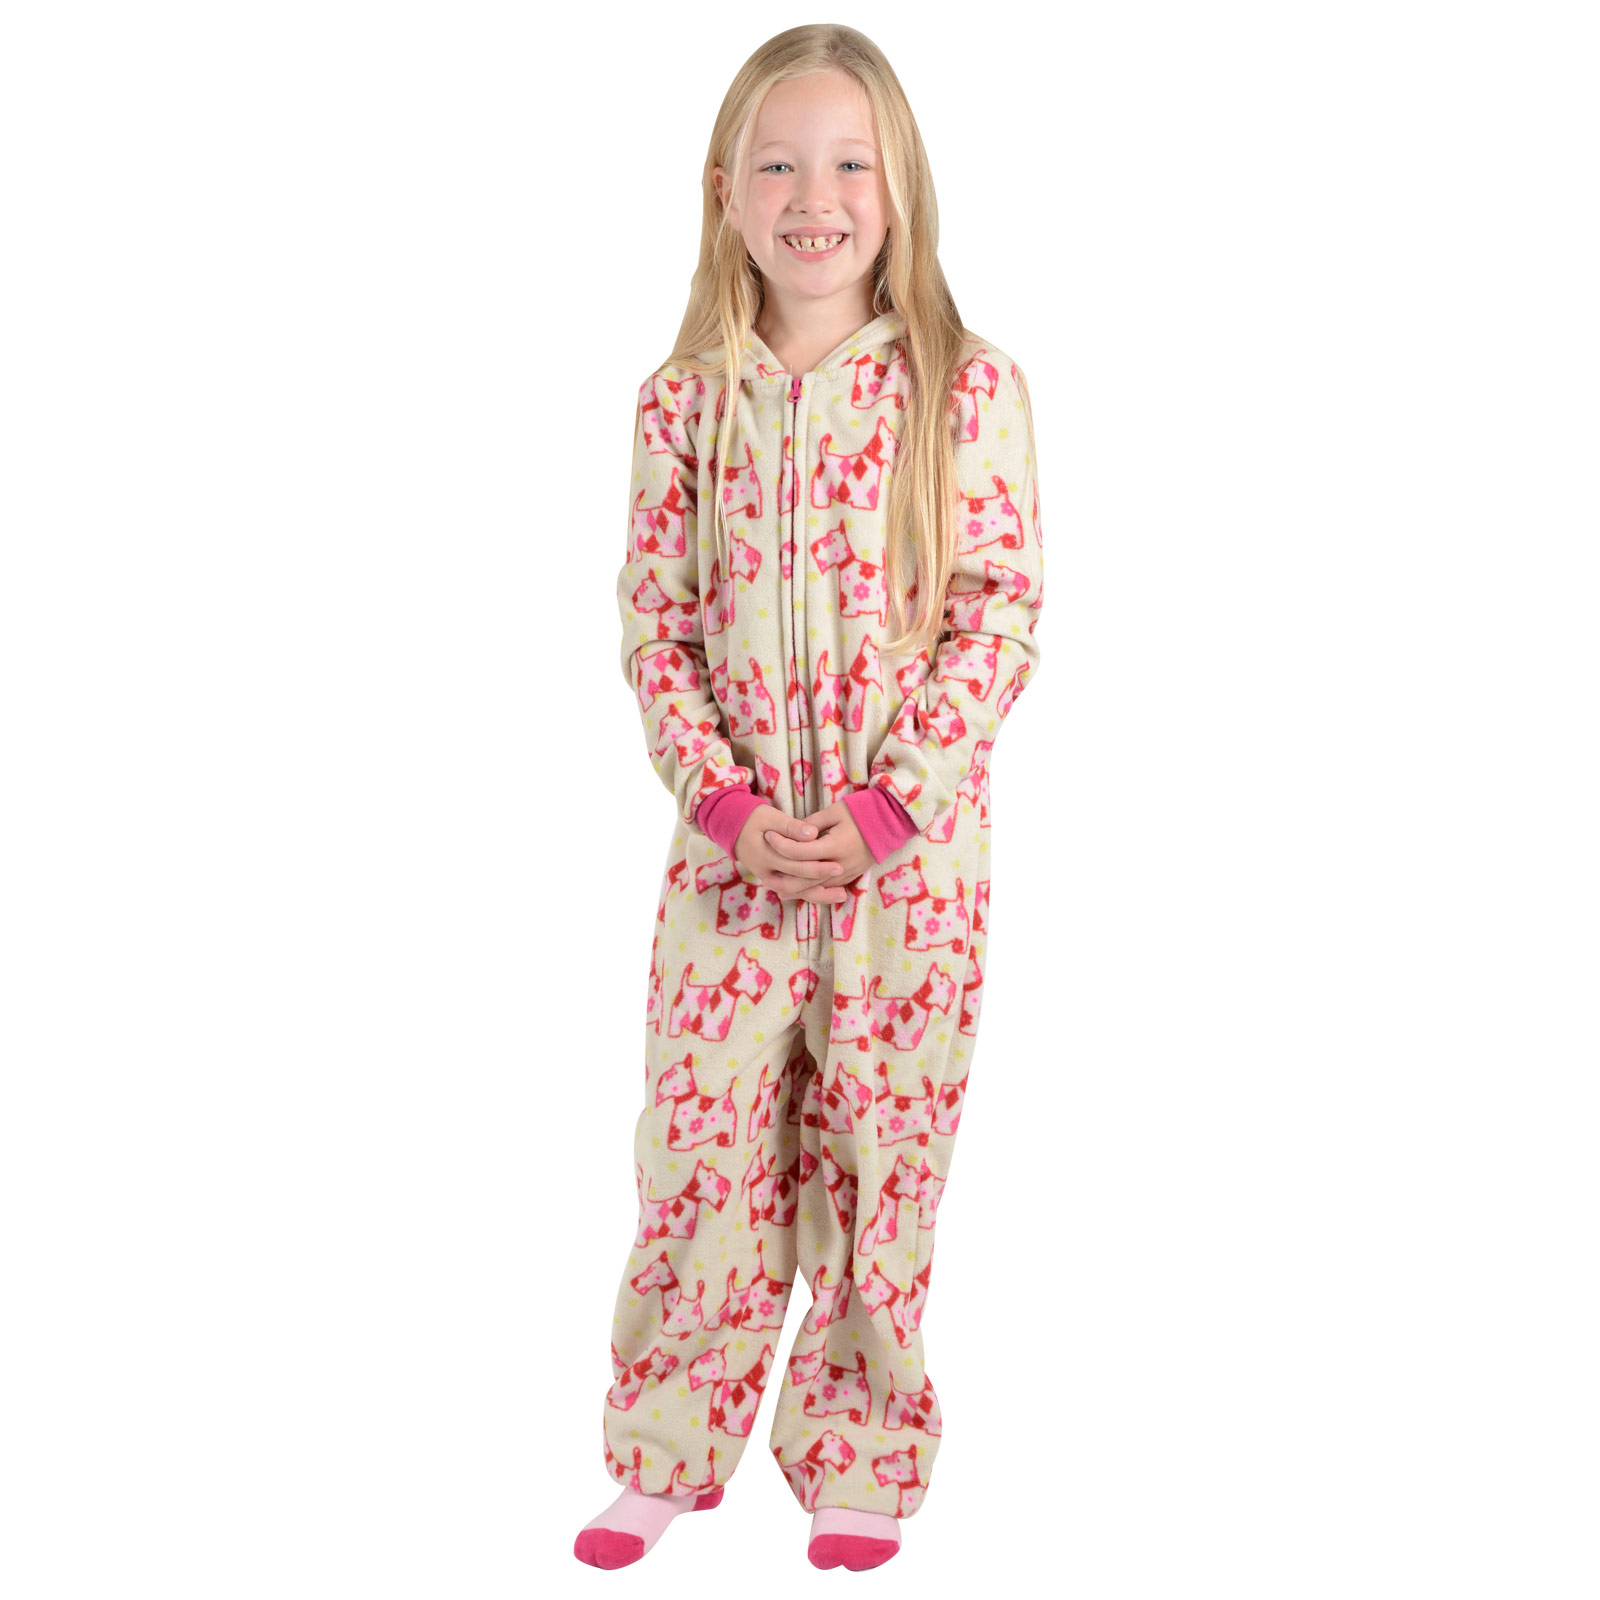 Shop from the world's largest selection and best deals for One Piece Nightwear ( Years) for Girls. Shop with confidence on eBay! Skip to main content. eBay: Ladies/Womens/Girls Fleece All In One Pyjamas Outfit Costume Hood Size £ + £ postage. Girls 1Onesie1 Boys 1Onesie1 All In One Jumpsuit Hooded Zip PJ Ages 3 - 13 Years.